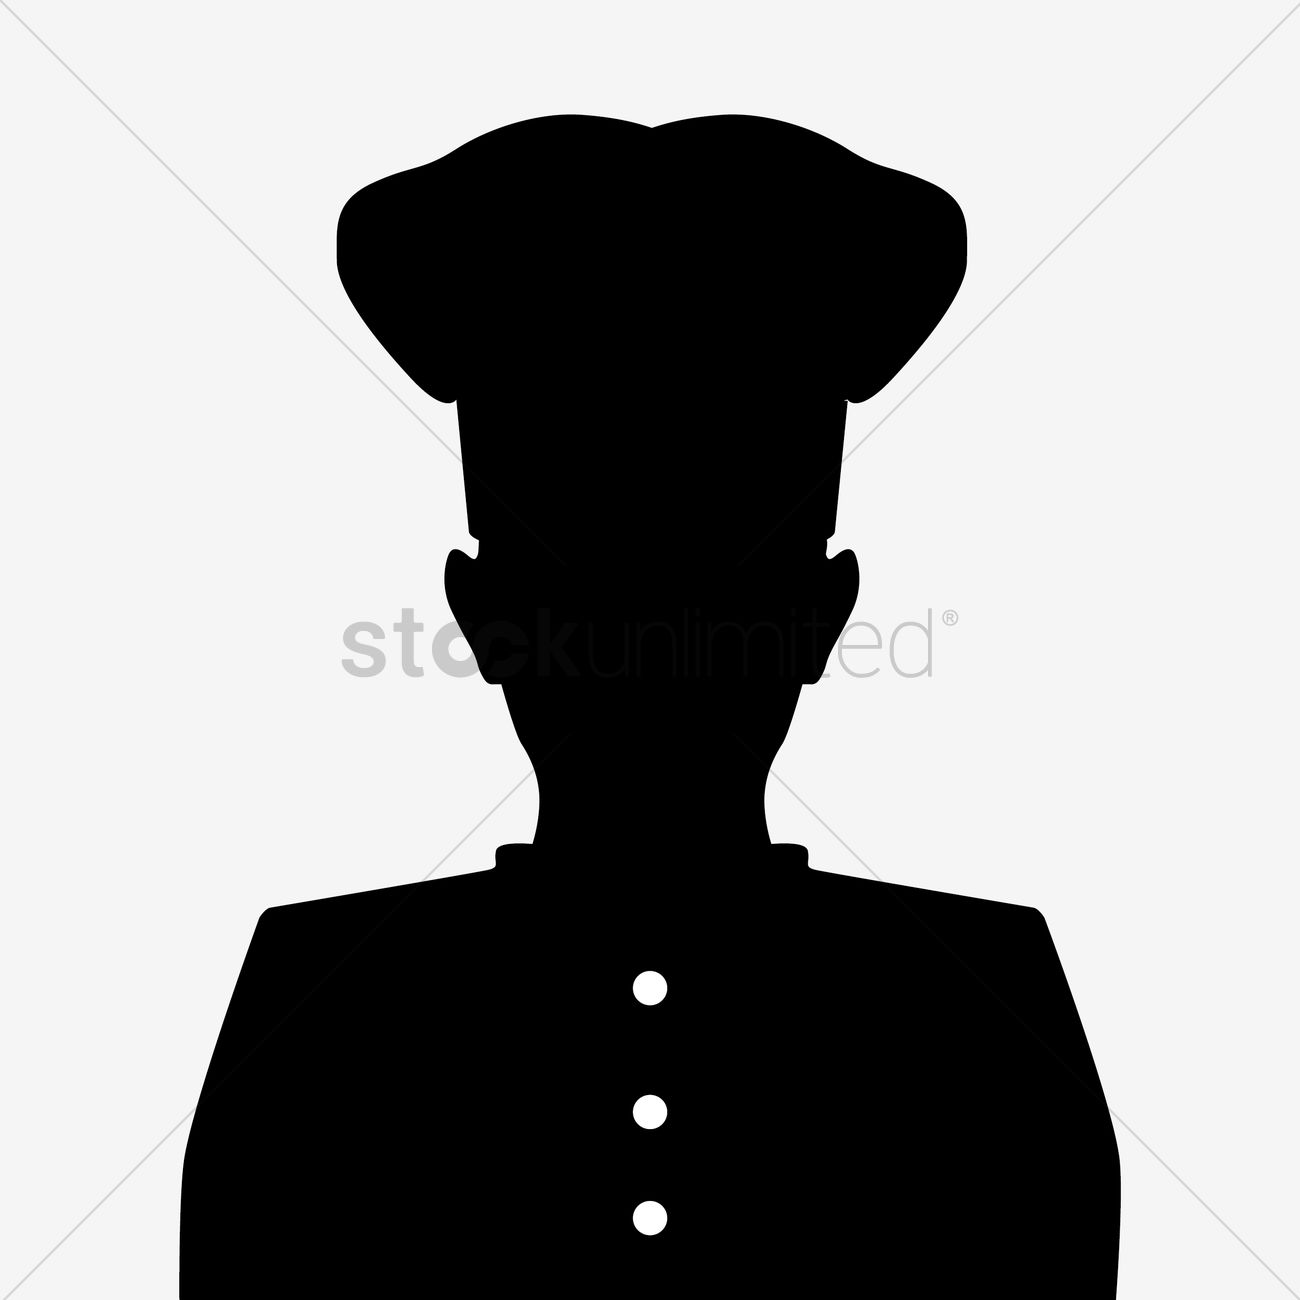 Silhouette of a chef Vector Image - 1441154 | StockUnlimited